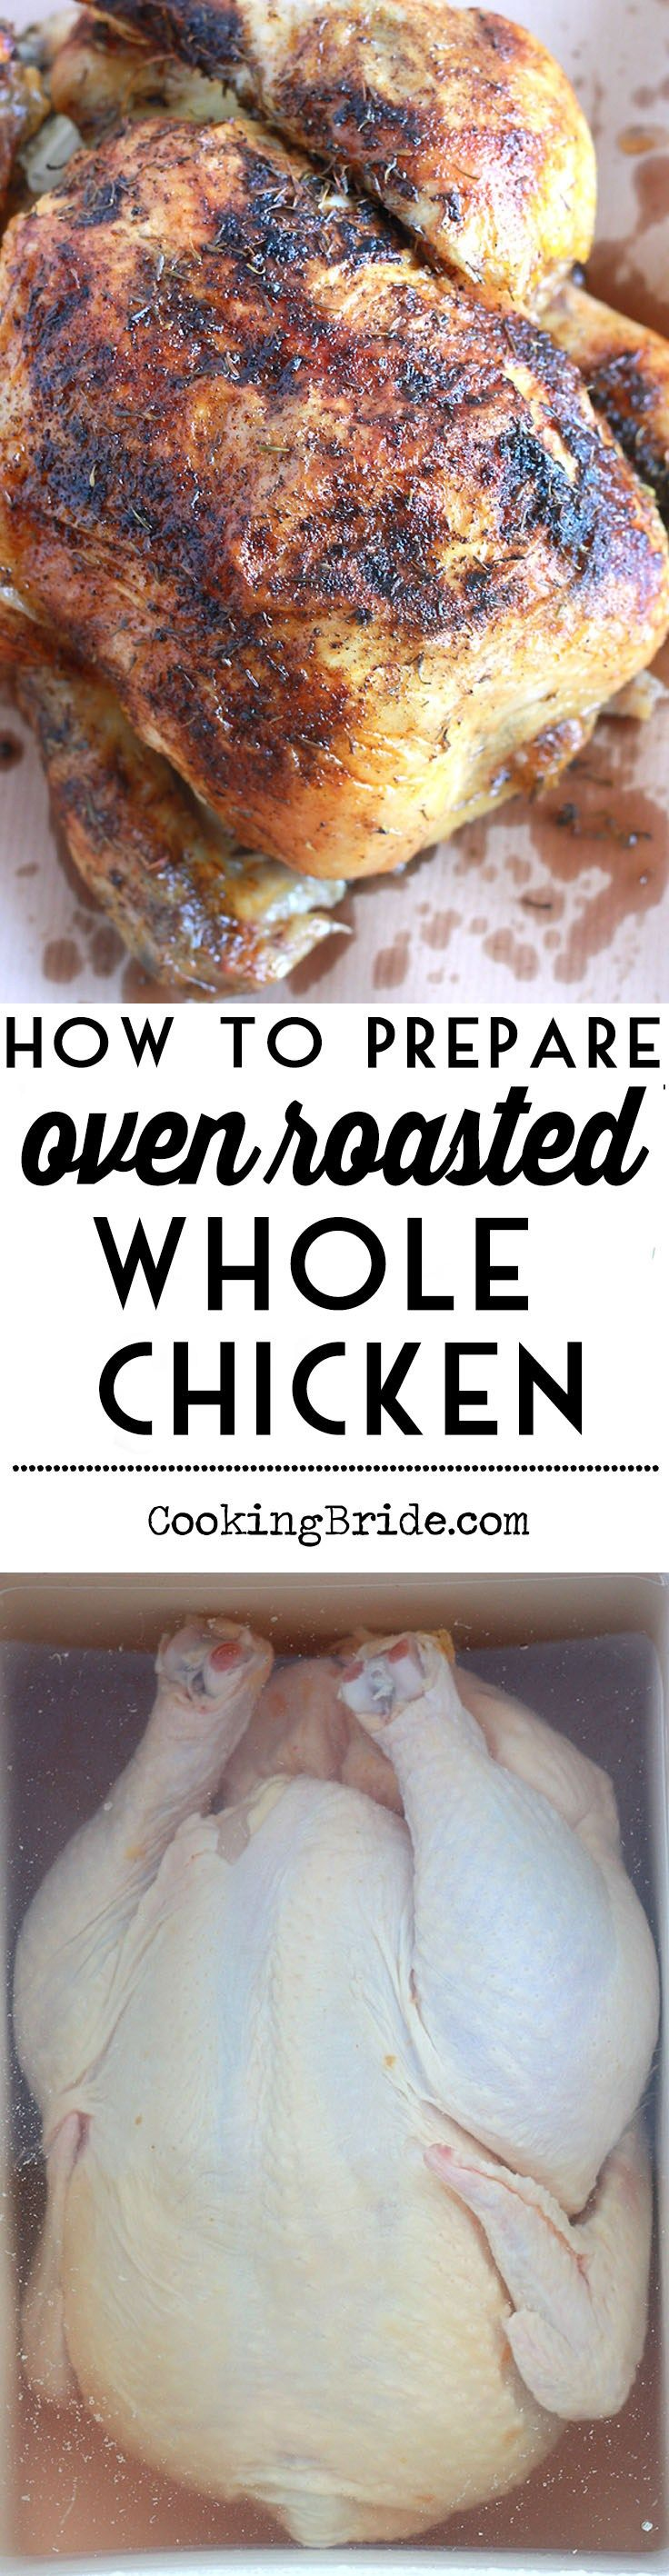 how to prepare moistened chicken Chicken is a versatile protein that you can prepare in seemingly endless ways some of these methods are not the healthiest, especially if they are fried and loaded with unhealthy fats however, you can easily and quickly make chicken legs into a creation that is both healthy and delicious.